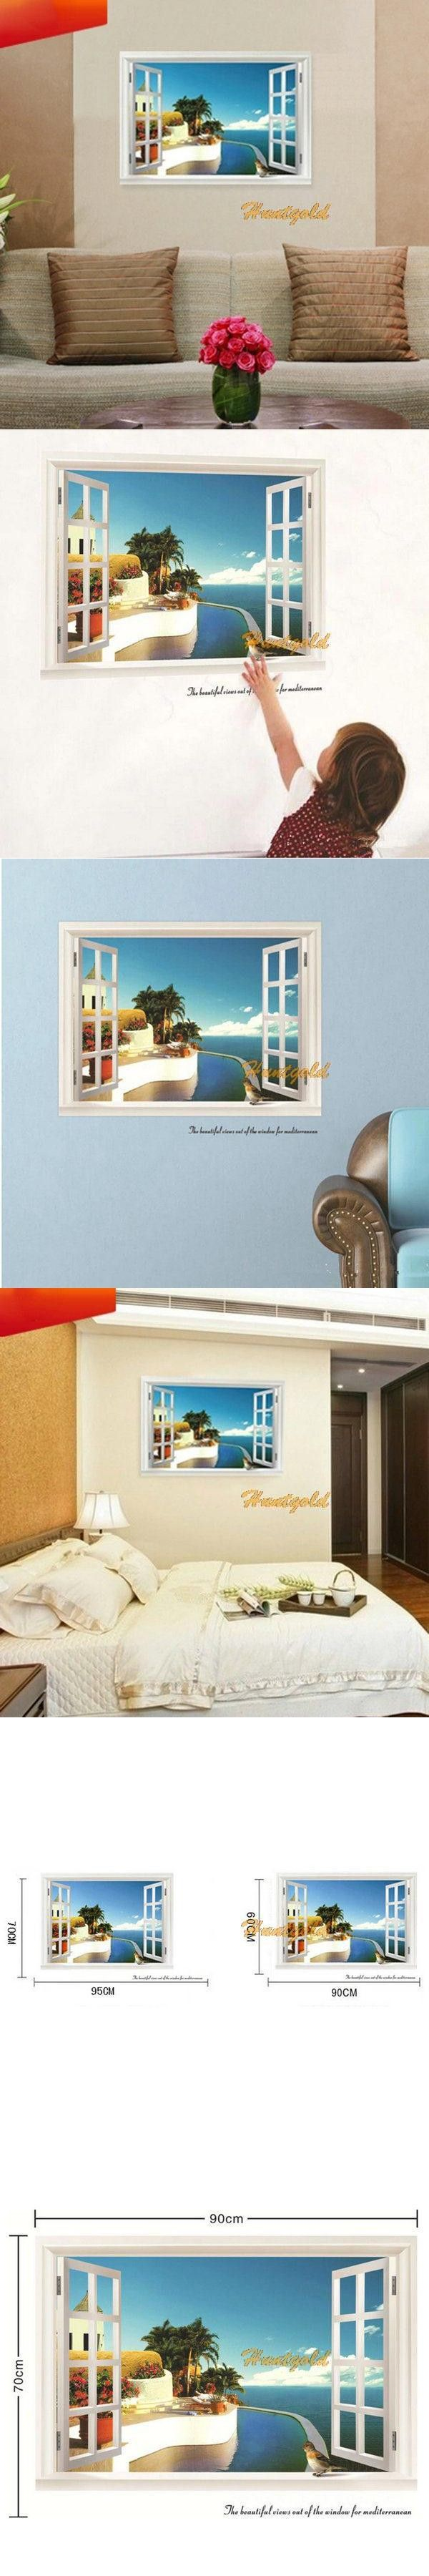 Fashion Mediterranean Style Window Beach Wall Sticker Home Decor Decals Vinyl Art $4.52